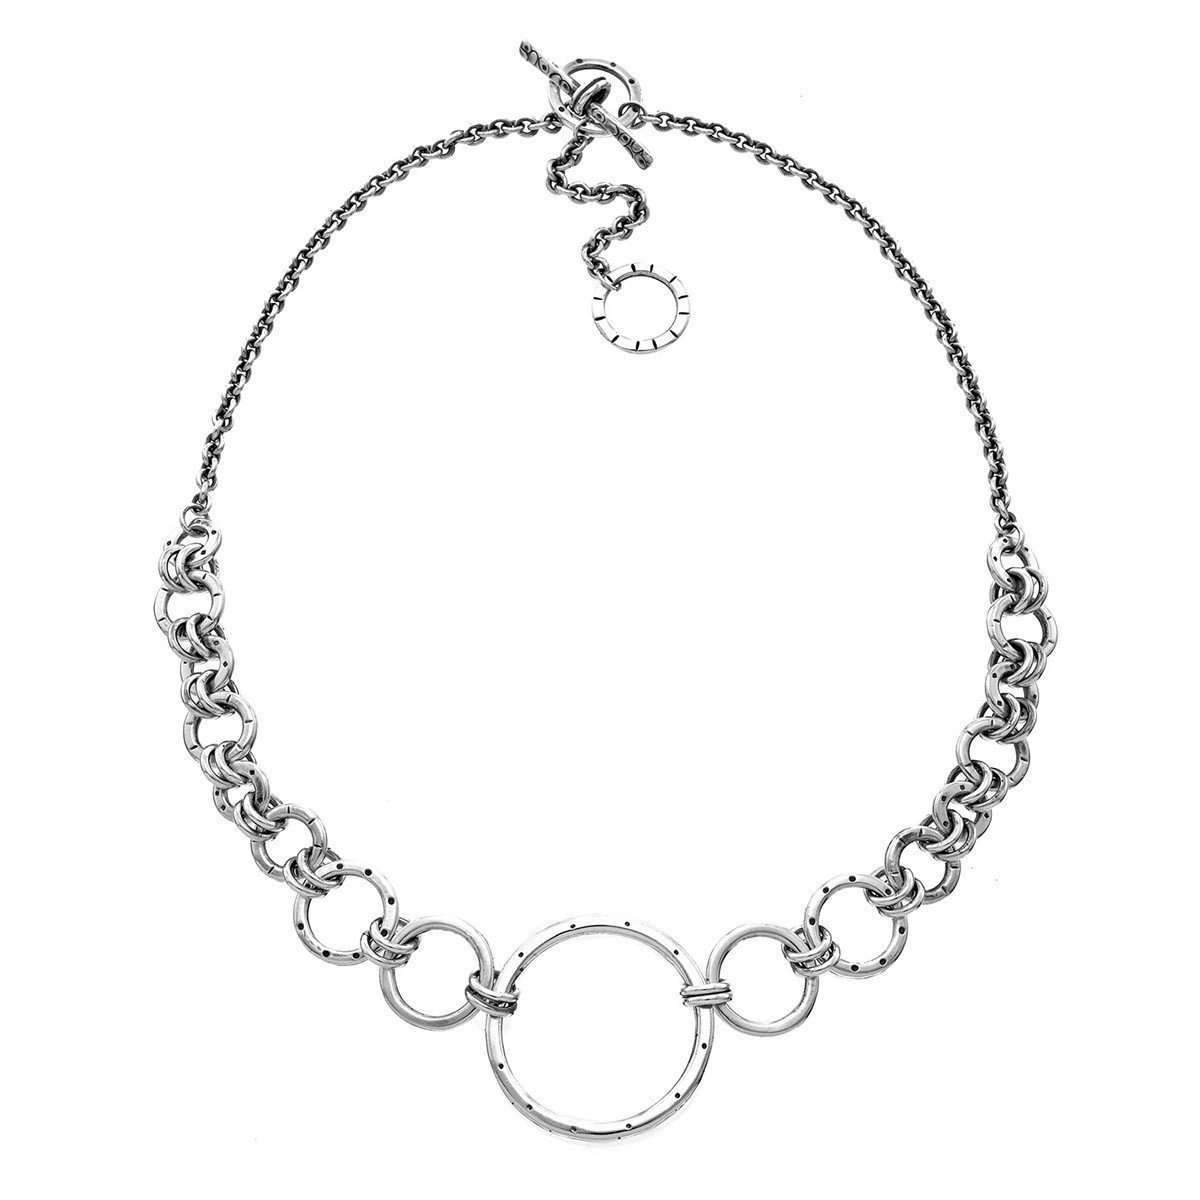 f7ffdf699c98 Silver Gradient Necklace - Female First Shopping